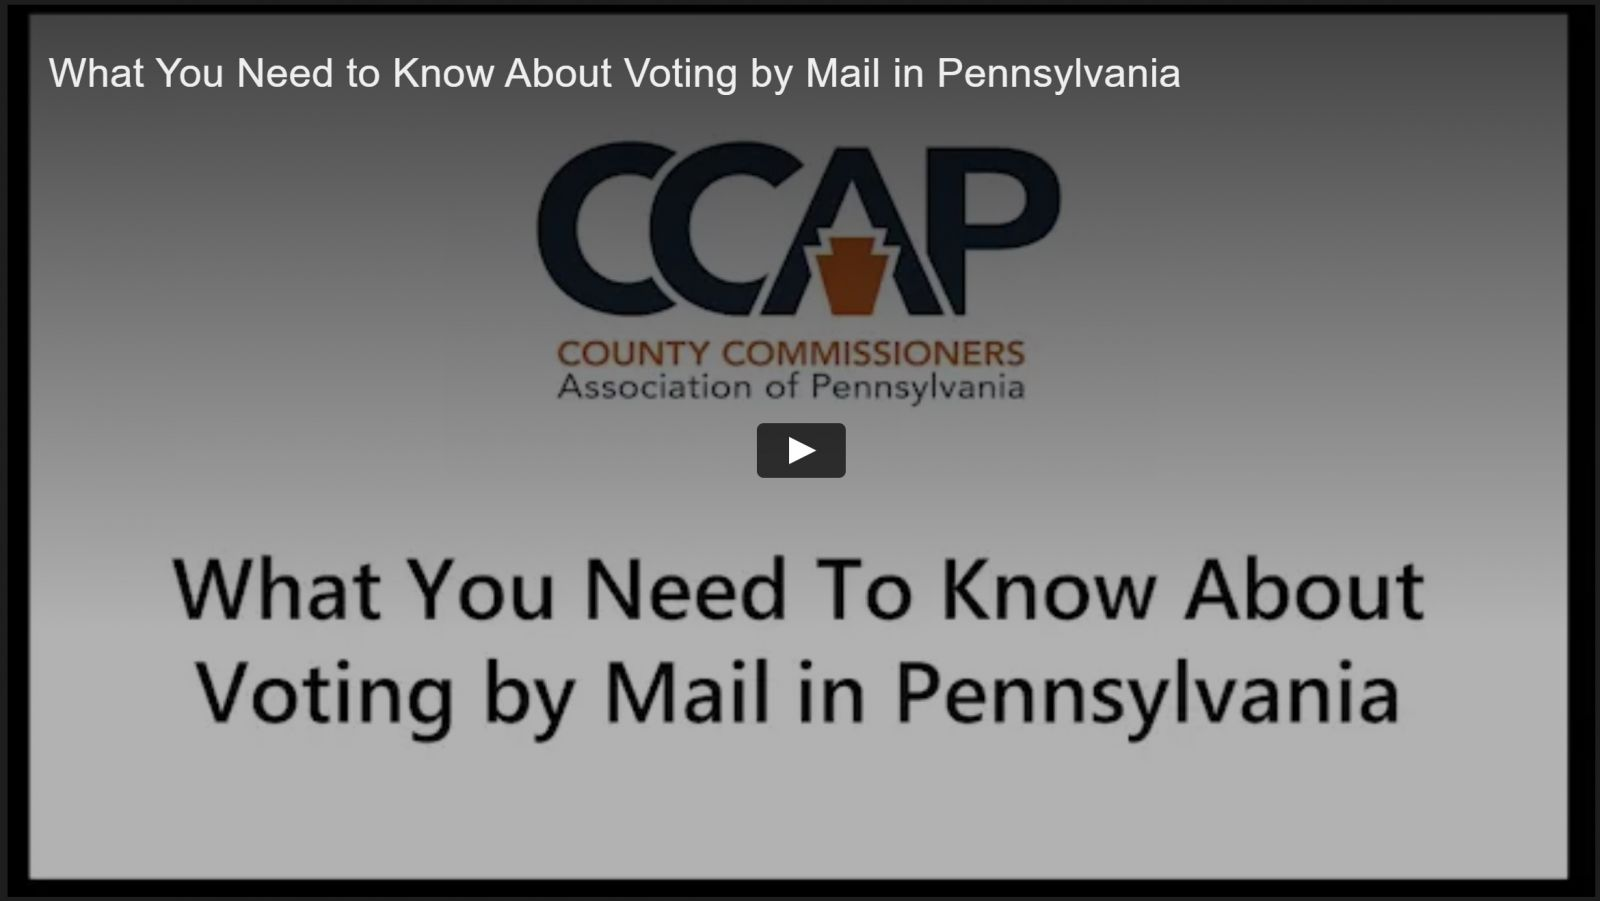 What you need to know about voting by mail in Pennsylvania CCAP County Commissioners Association of Pennsylvania